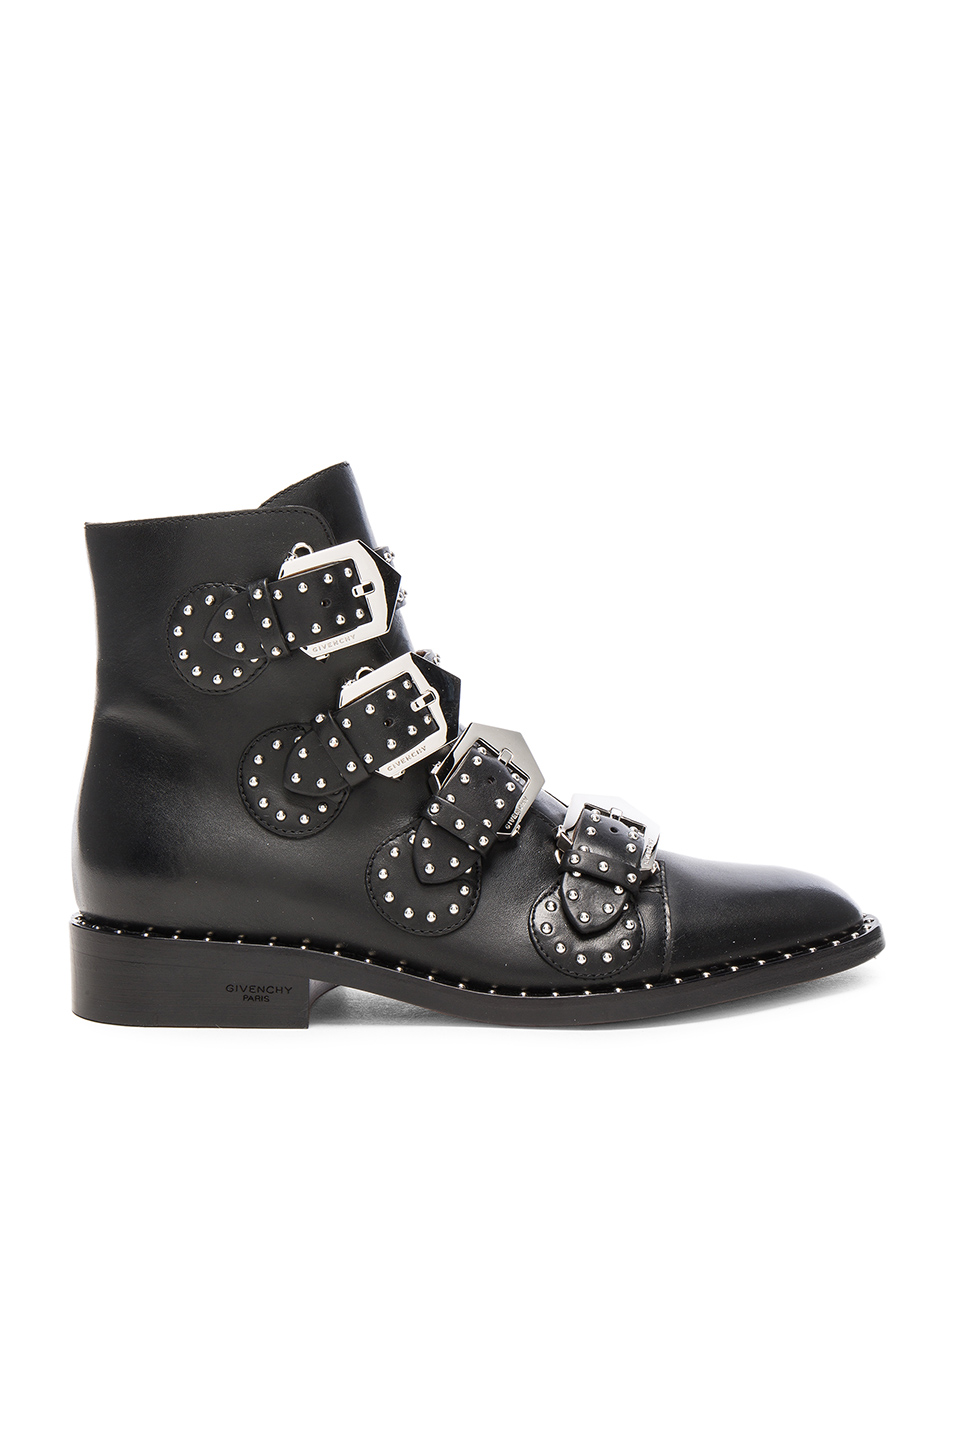 Givenchy Elegant Studded Leather Ankle Boots in Black